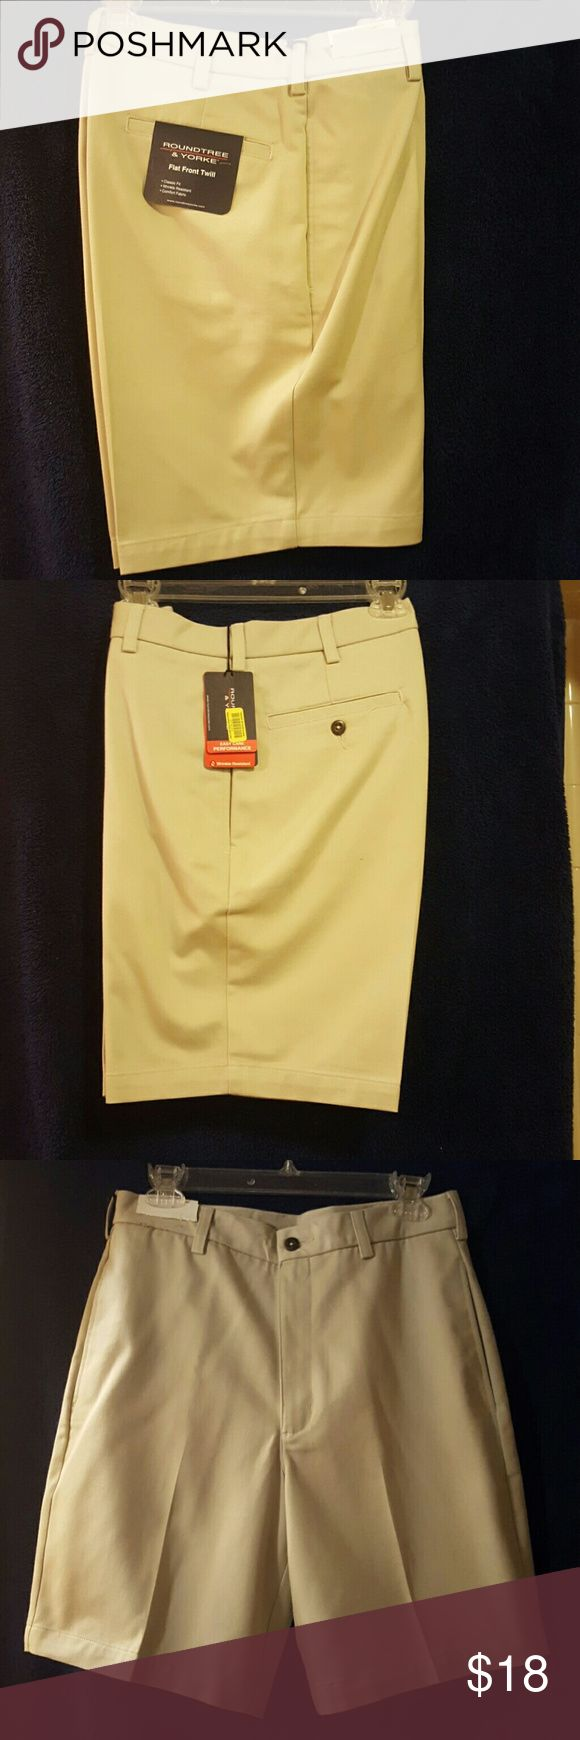 NWT Men's Dress Shorts NWT Men's dress shorts. Two buttons on back side pockets. Easy care wrinkle free 100 % cotton. The shorts are tan and not yellow. The photo color is not the color. Roundtree & Yorke Shorts